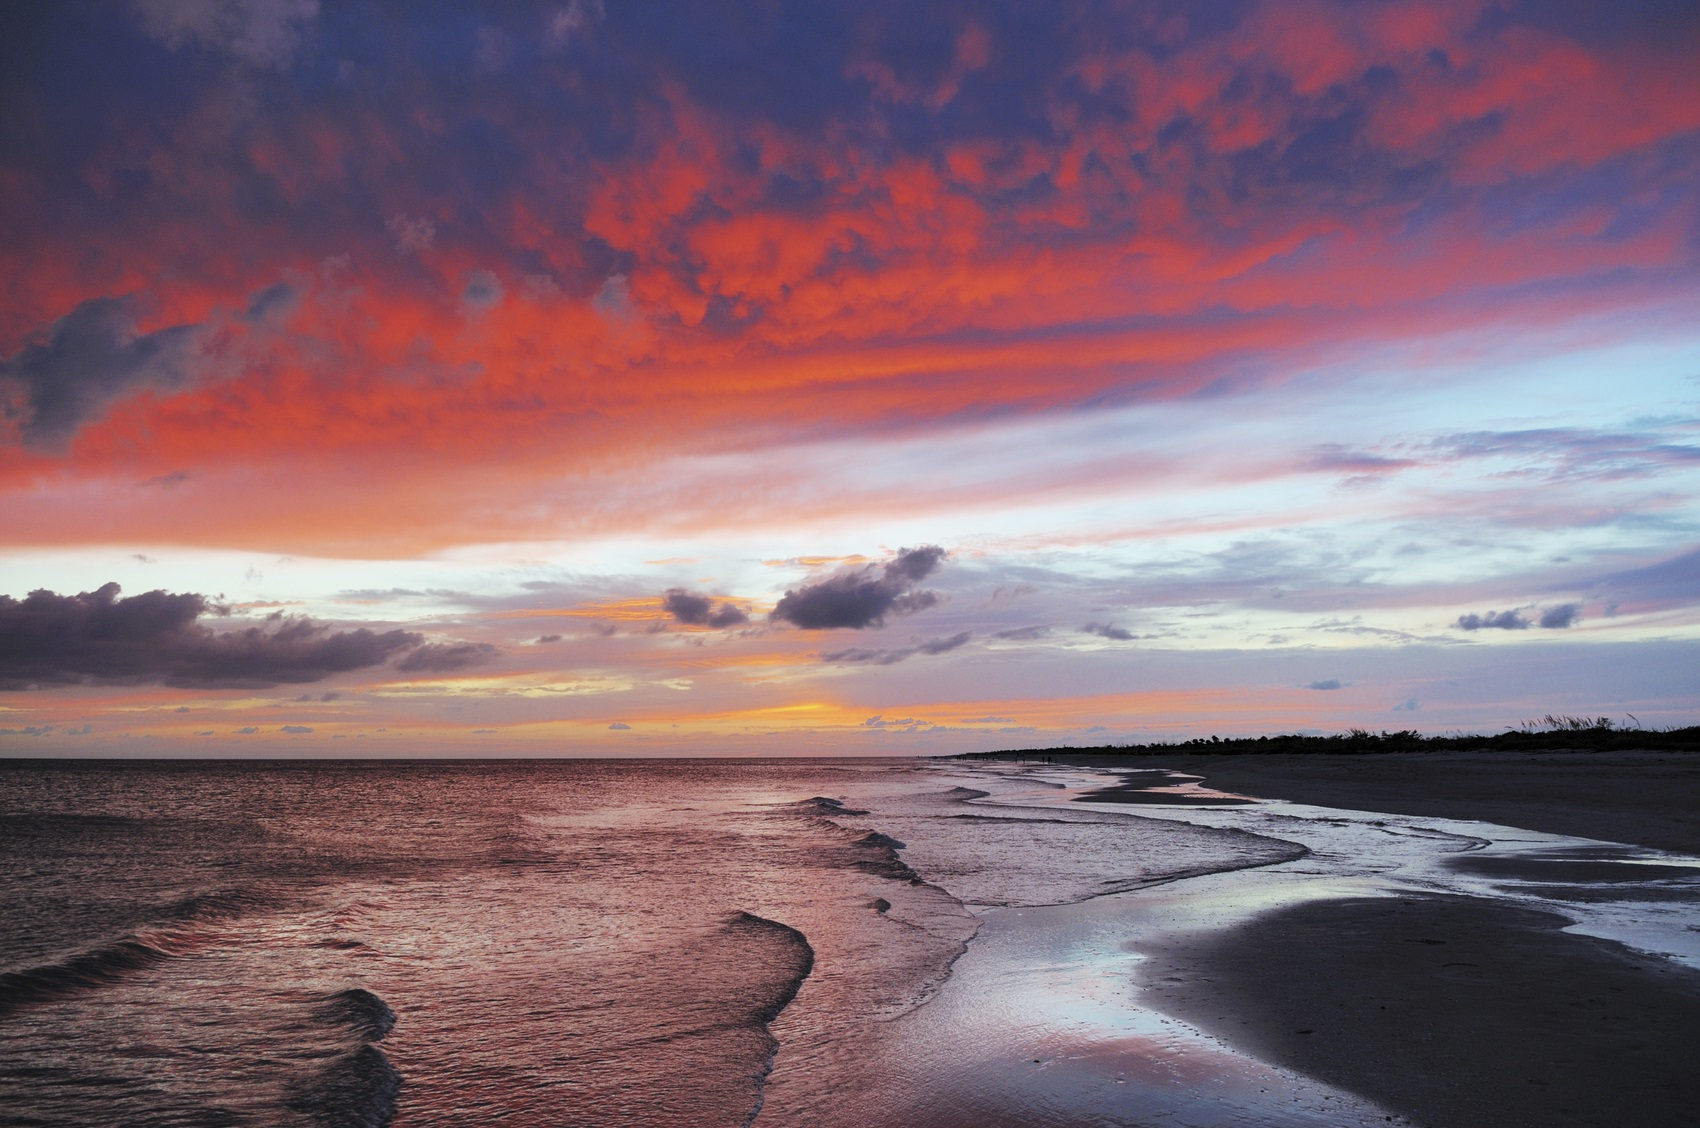 Dramatic And Colorful Sunset At Bowmans Beach On Sanibel Island FloridaMy Personal